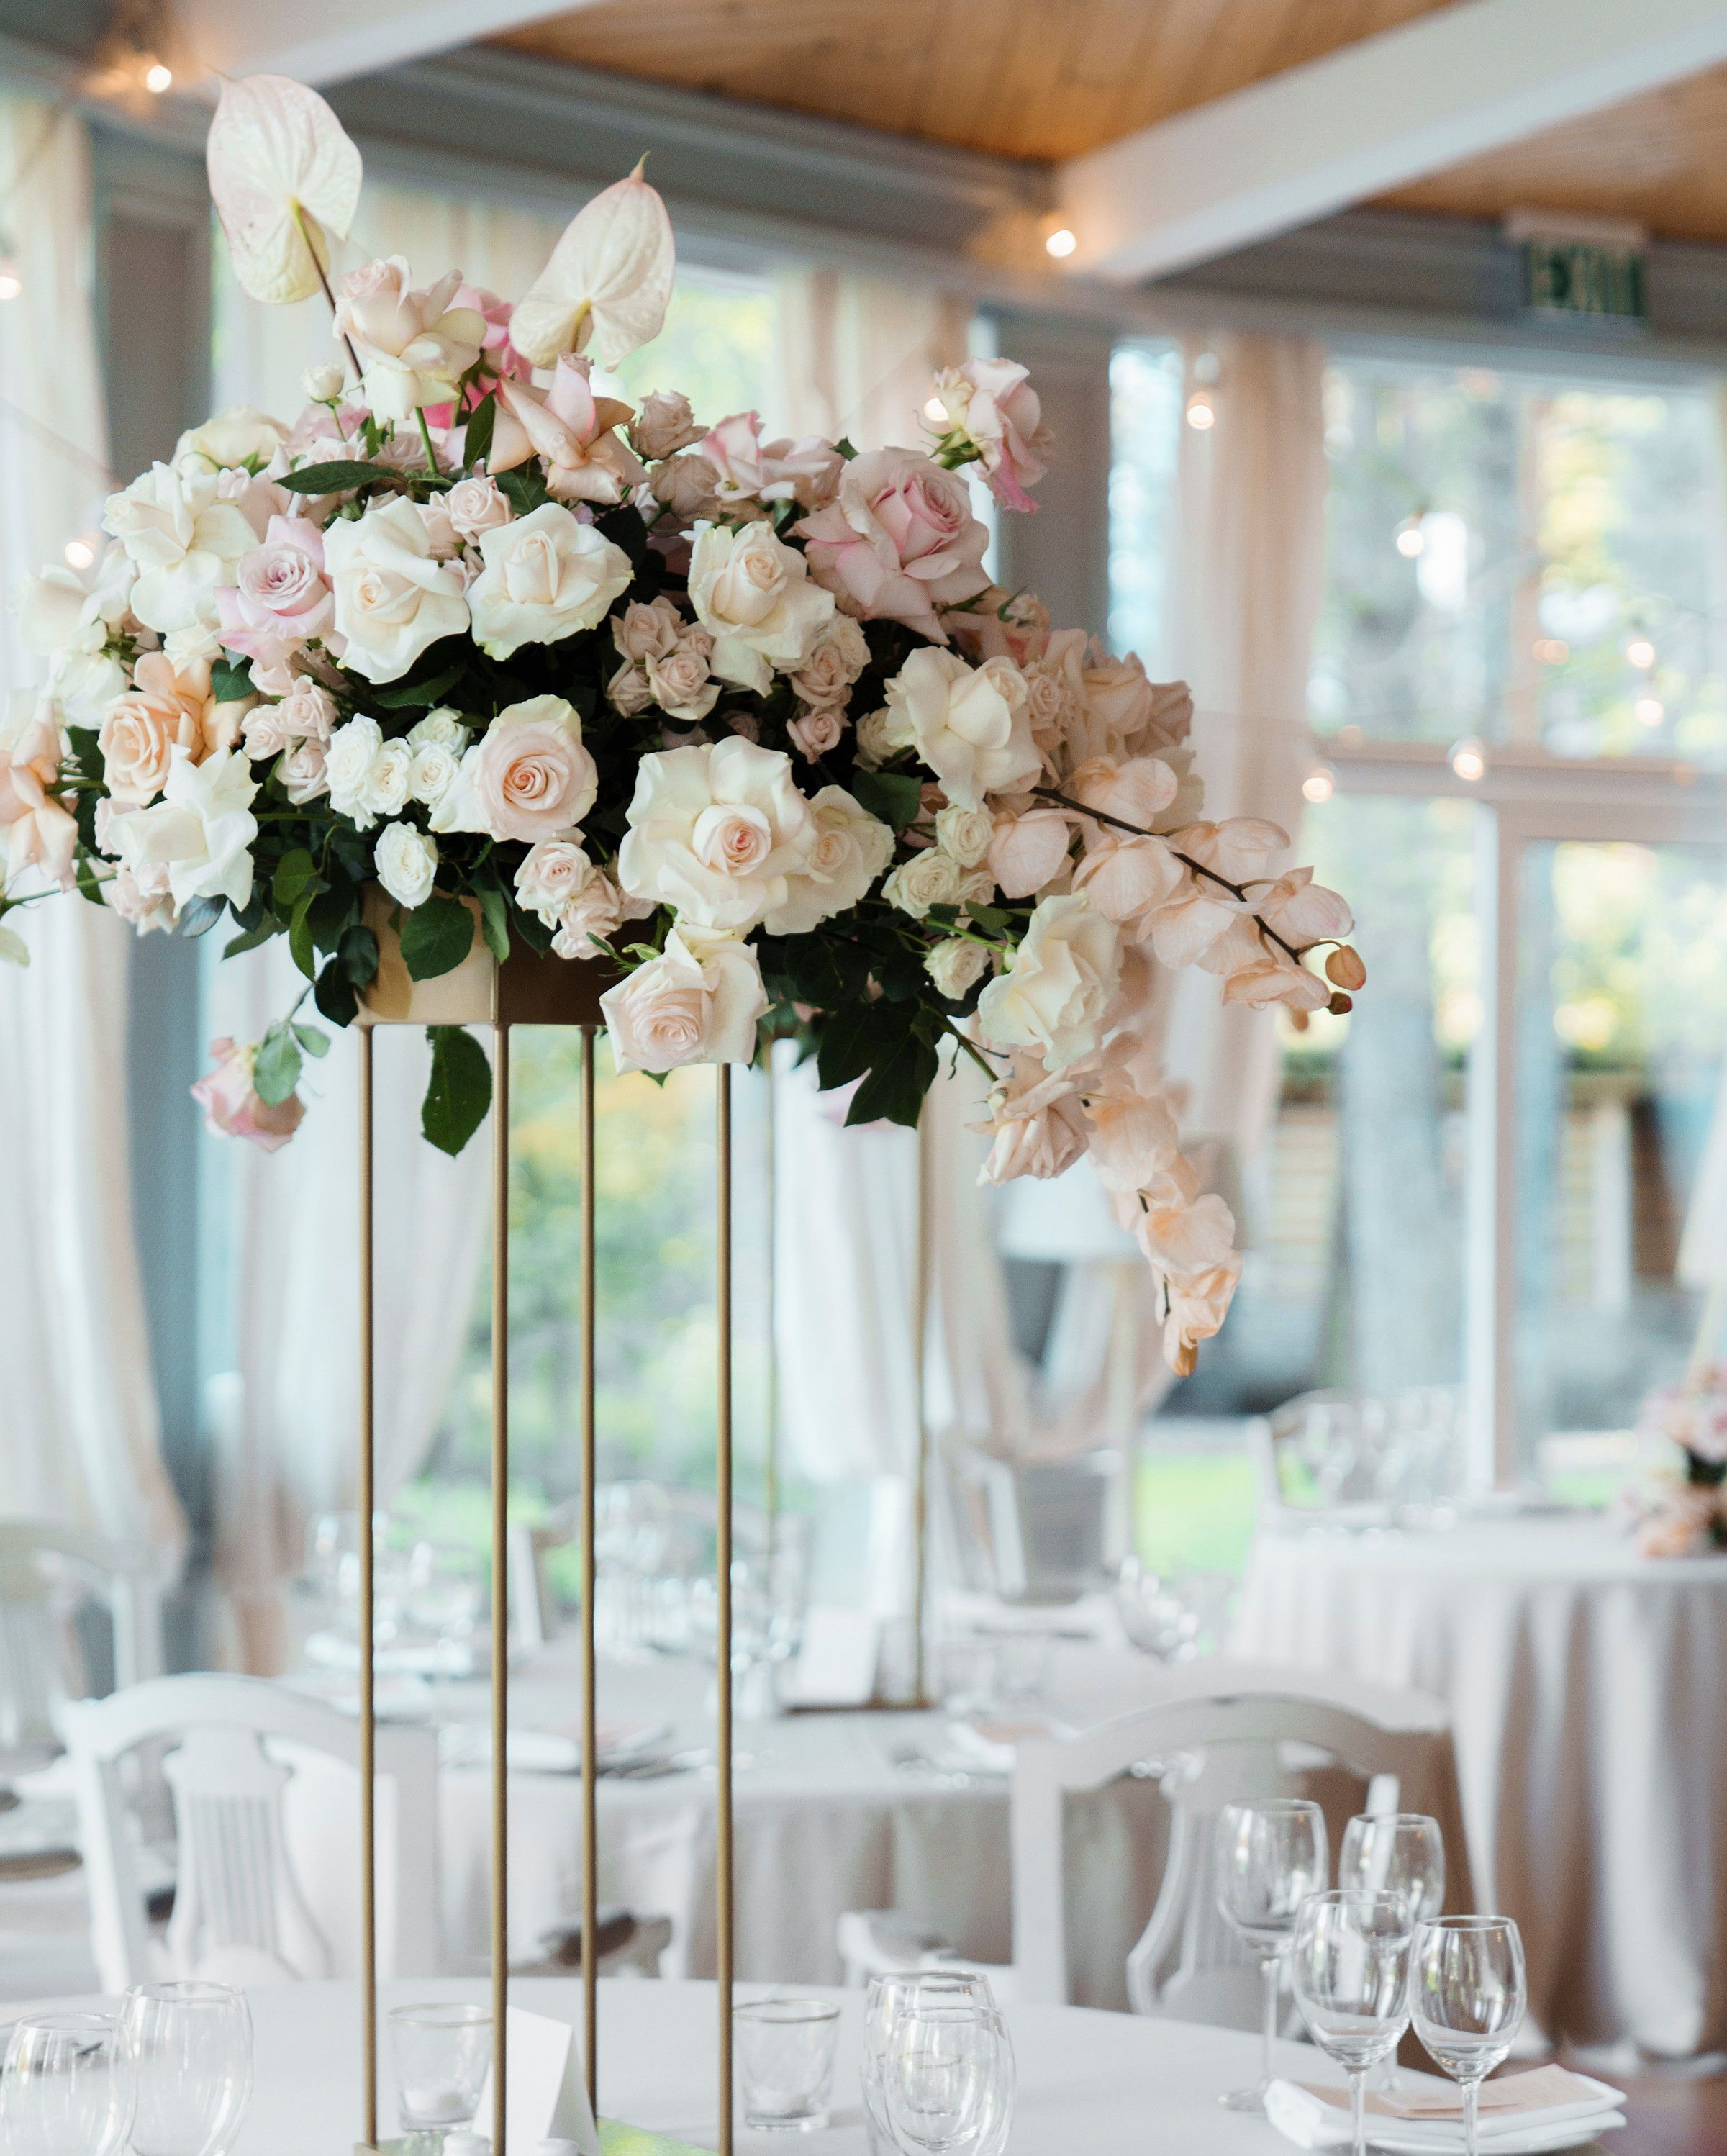 29 Tall Centerpieces That Will Take Your Reception Tables To New Heights Flower Centerpieces Wedding Wedding Floral Centerpieces Wedding Centerpieces